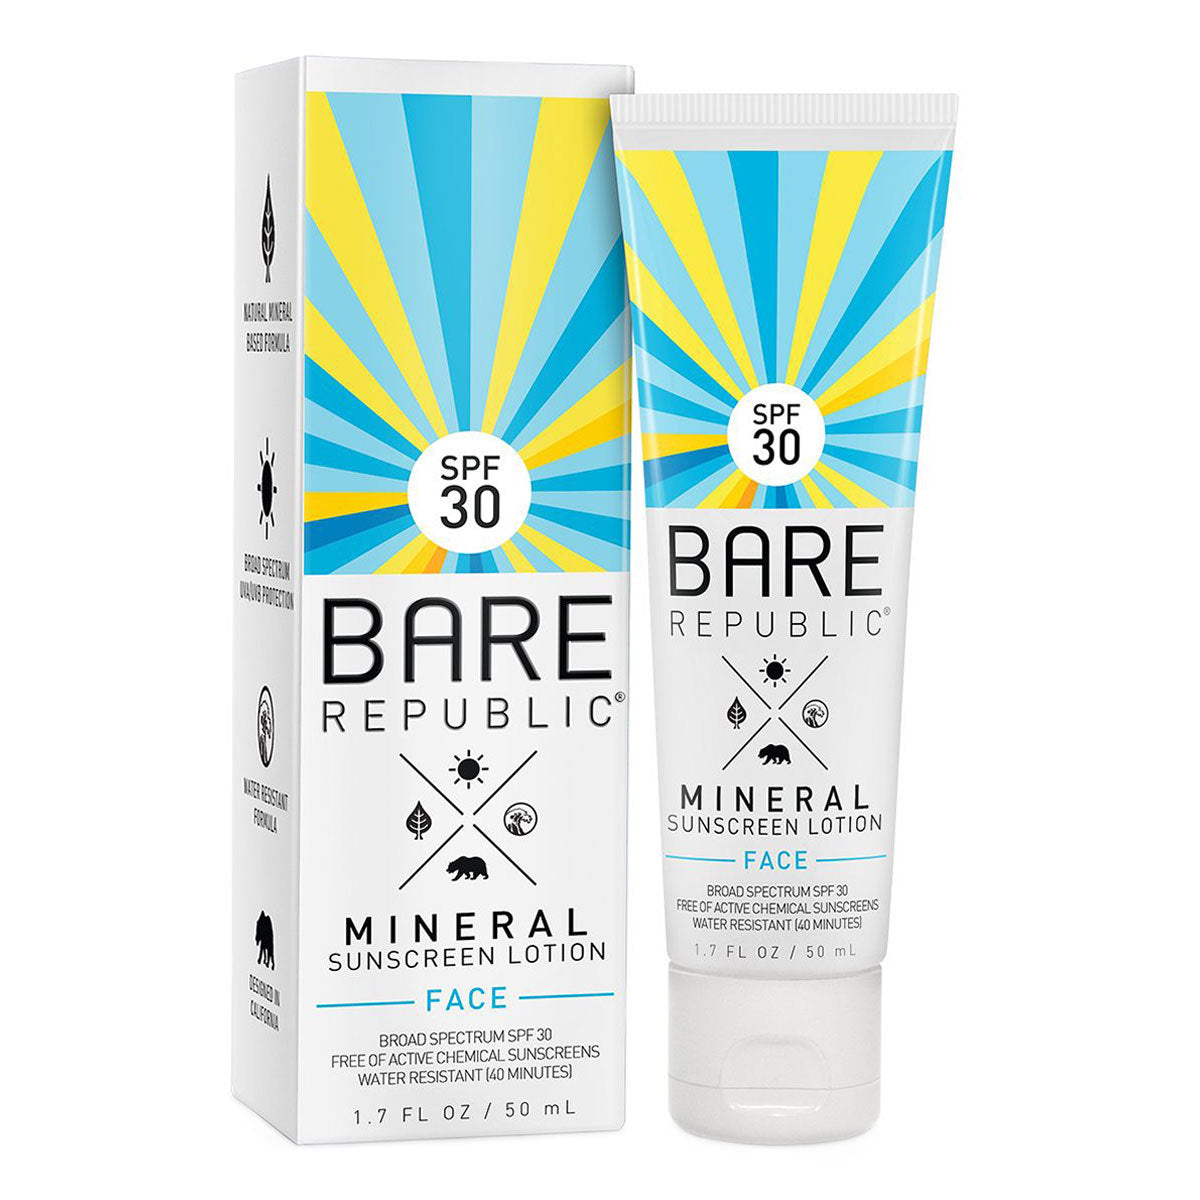 A white, blue, and yellow tub of Bare Republic Mineral Face Sunscreen